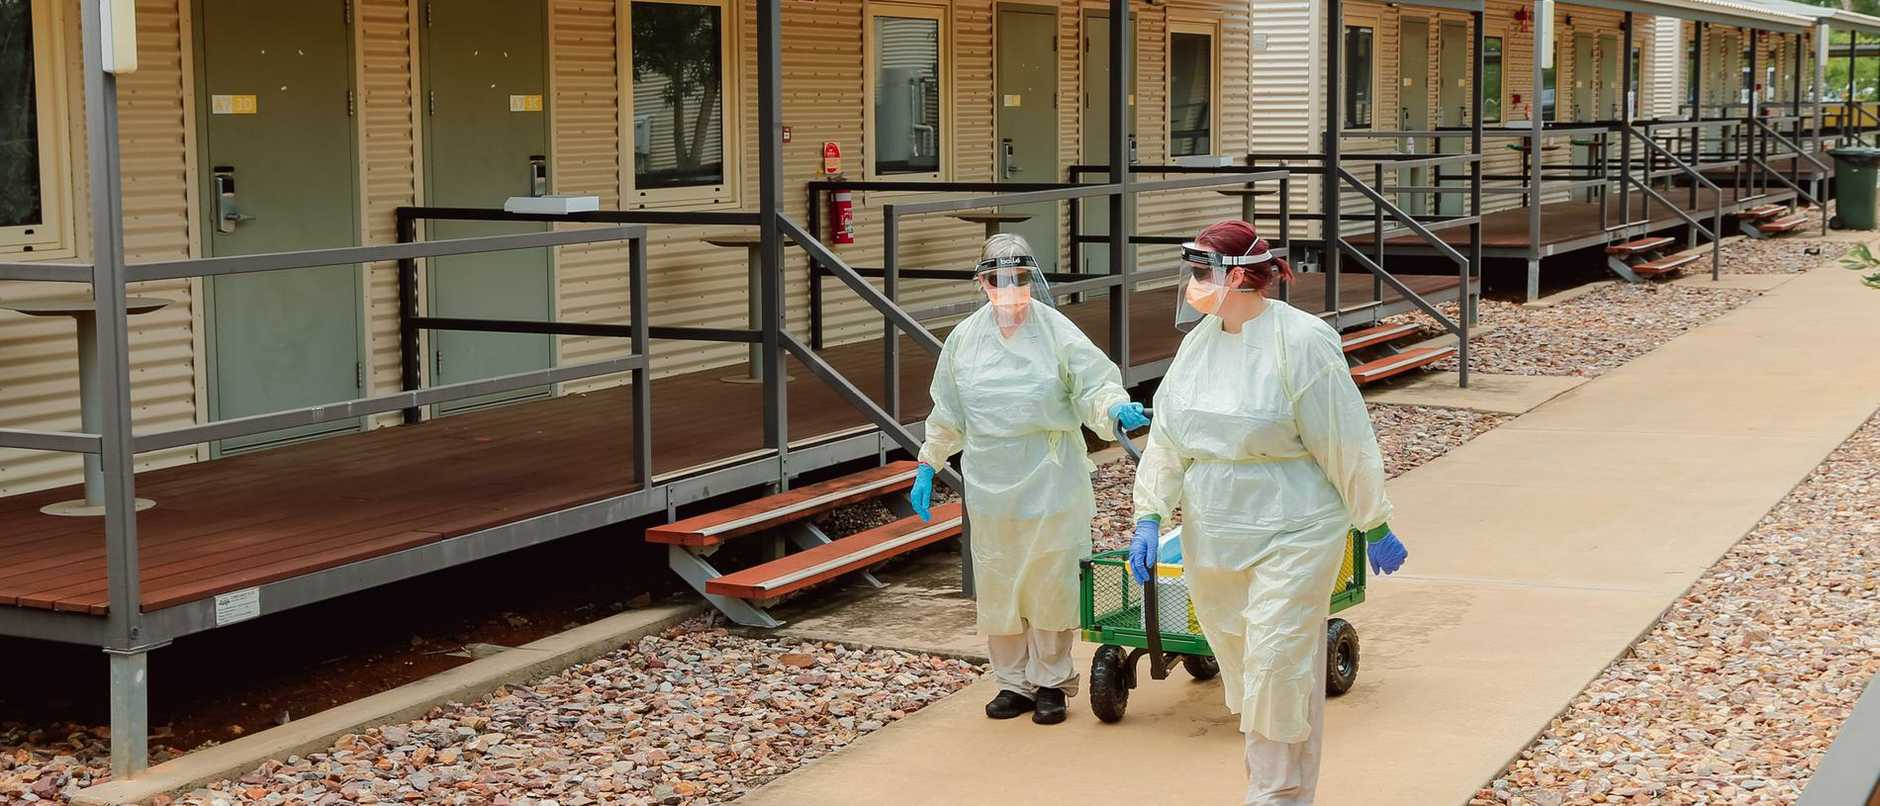 Four new cases of COVID-19, all in returned travellers from India, have tested positive at the Howard Springs quarantine facility.